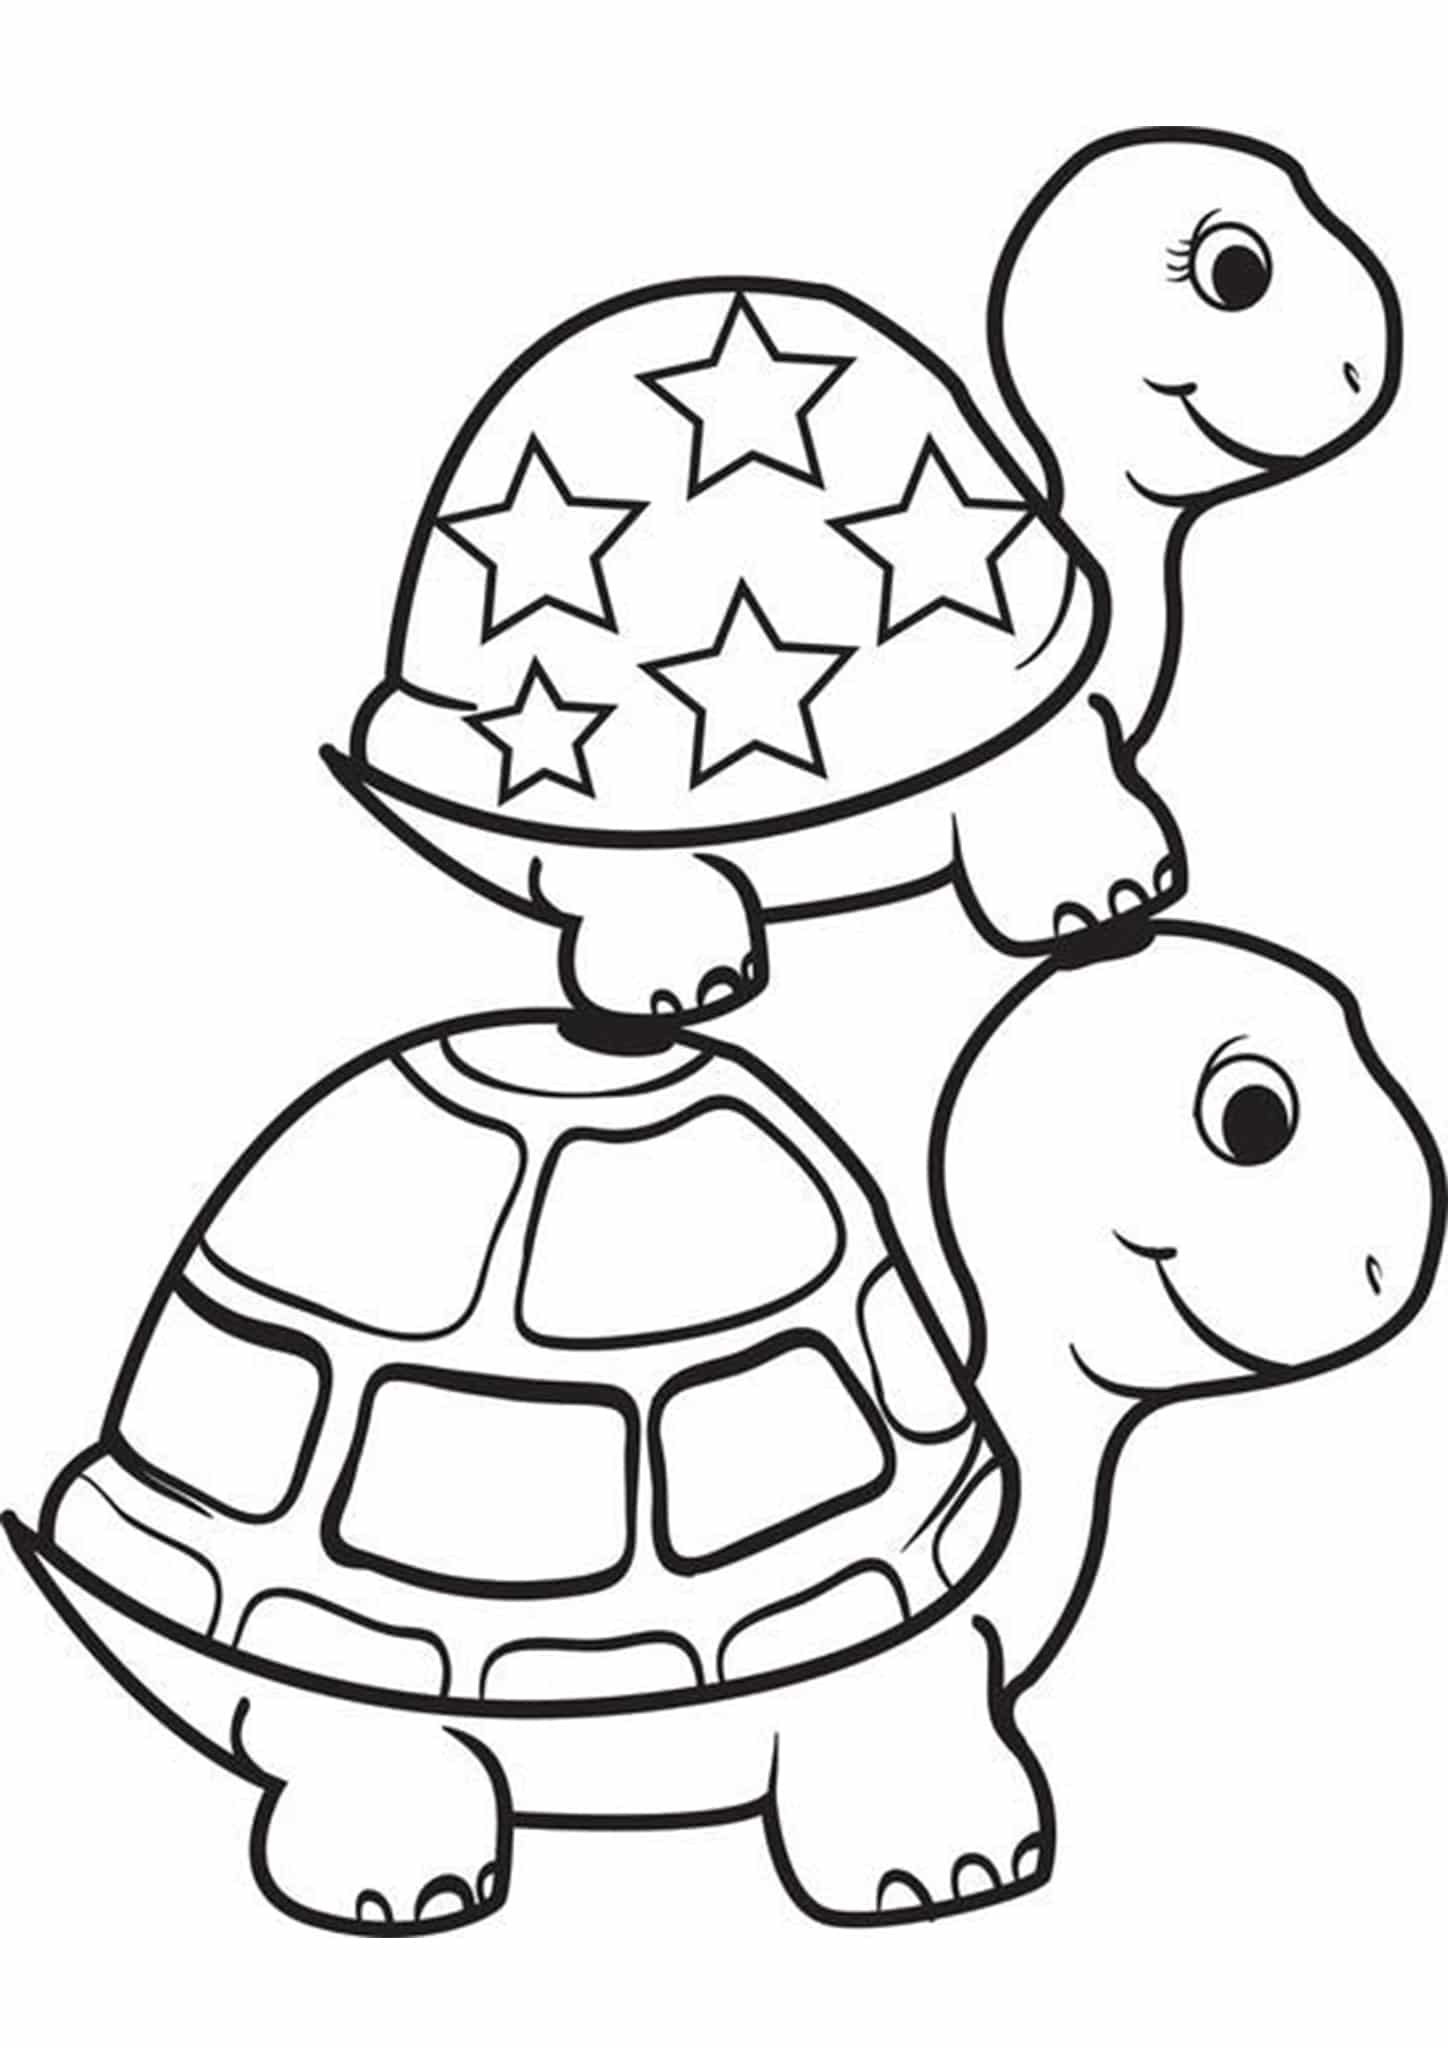 Free & Easy To Print Turtle Coloring Pages - Tulamama